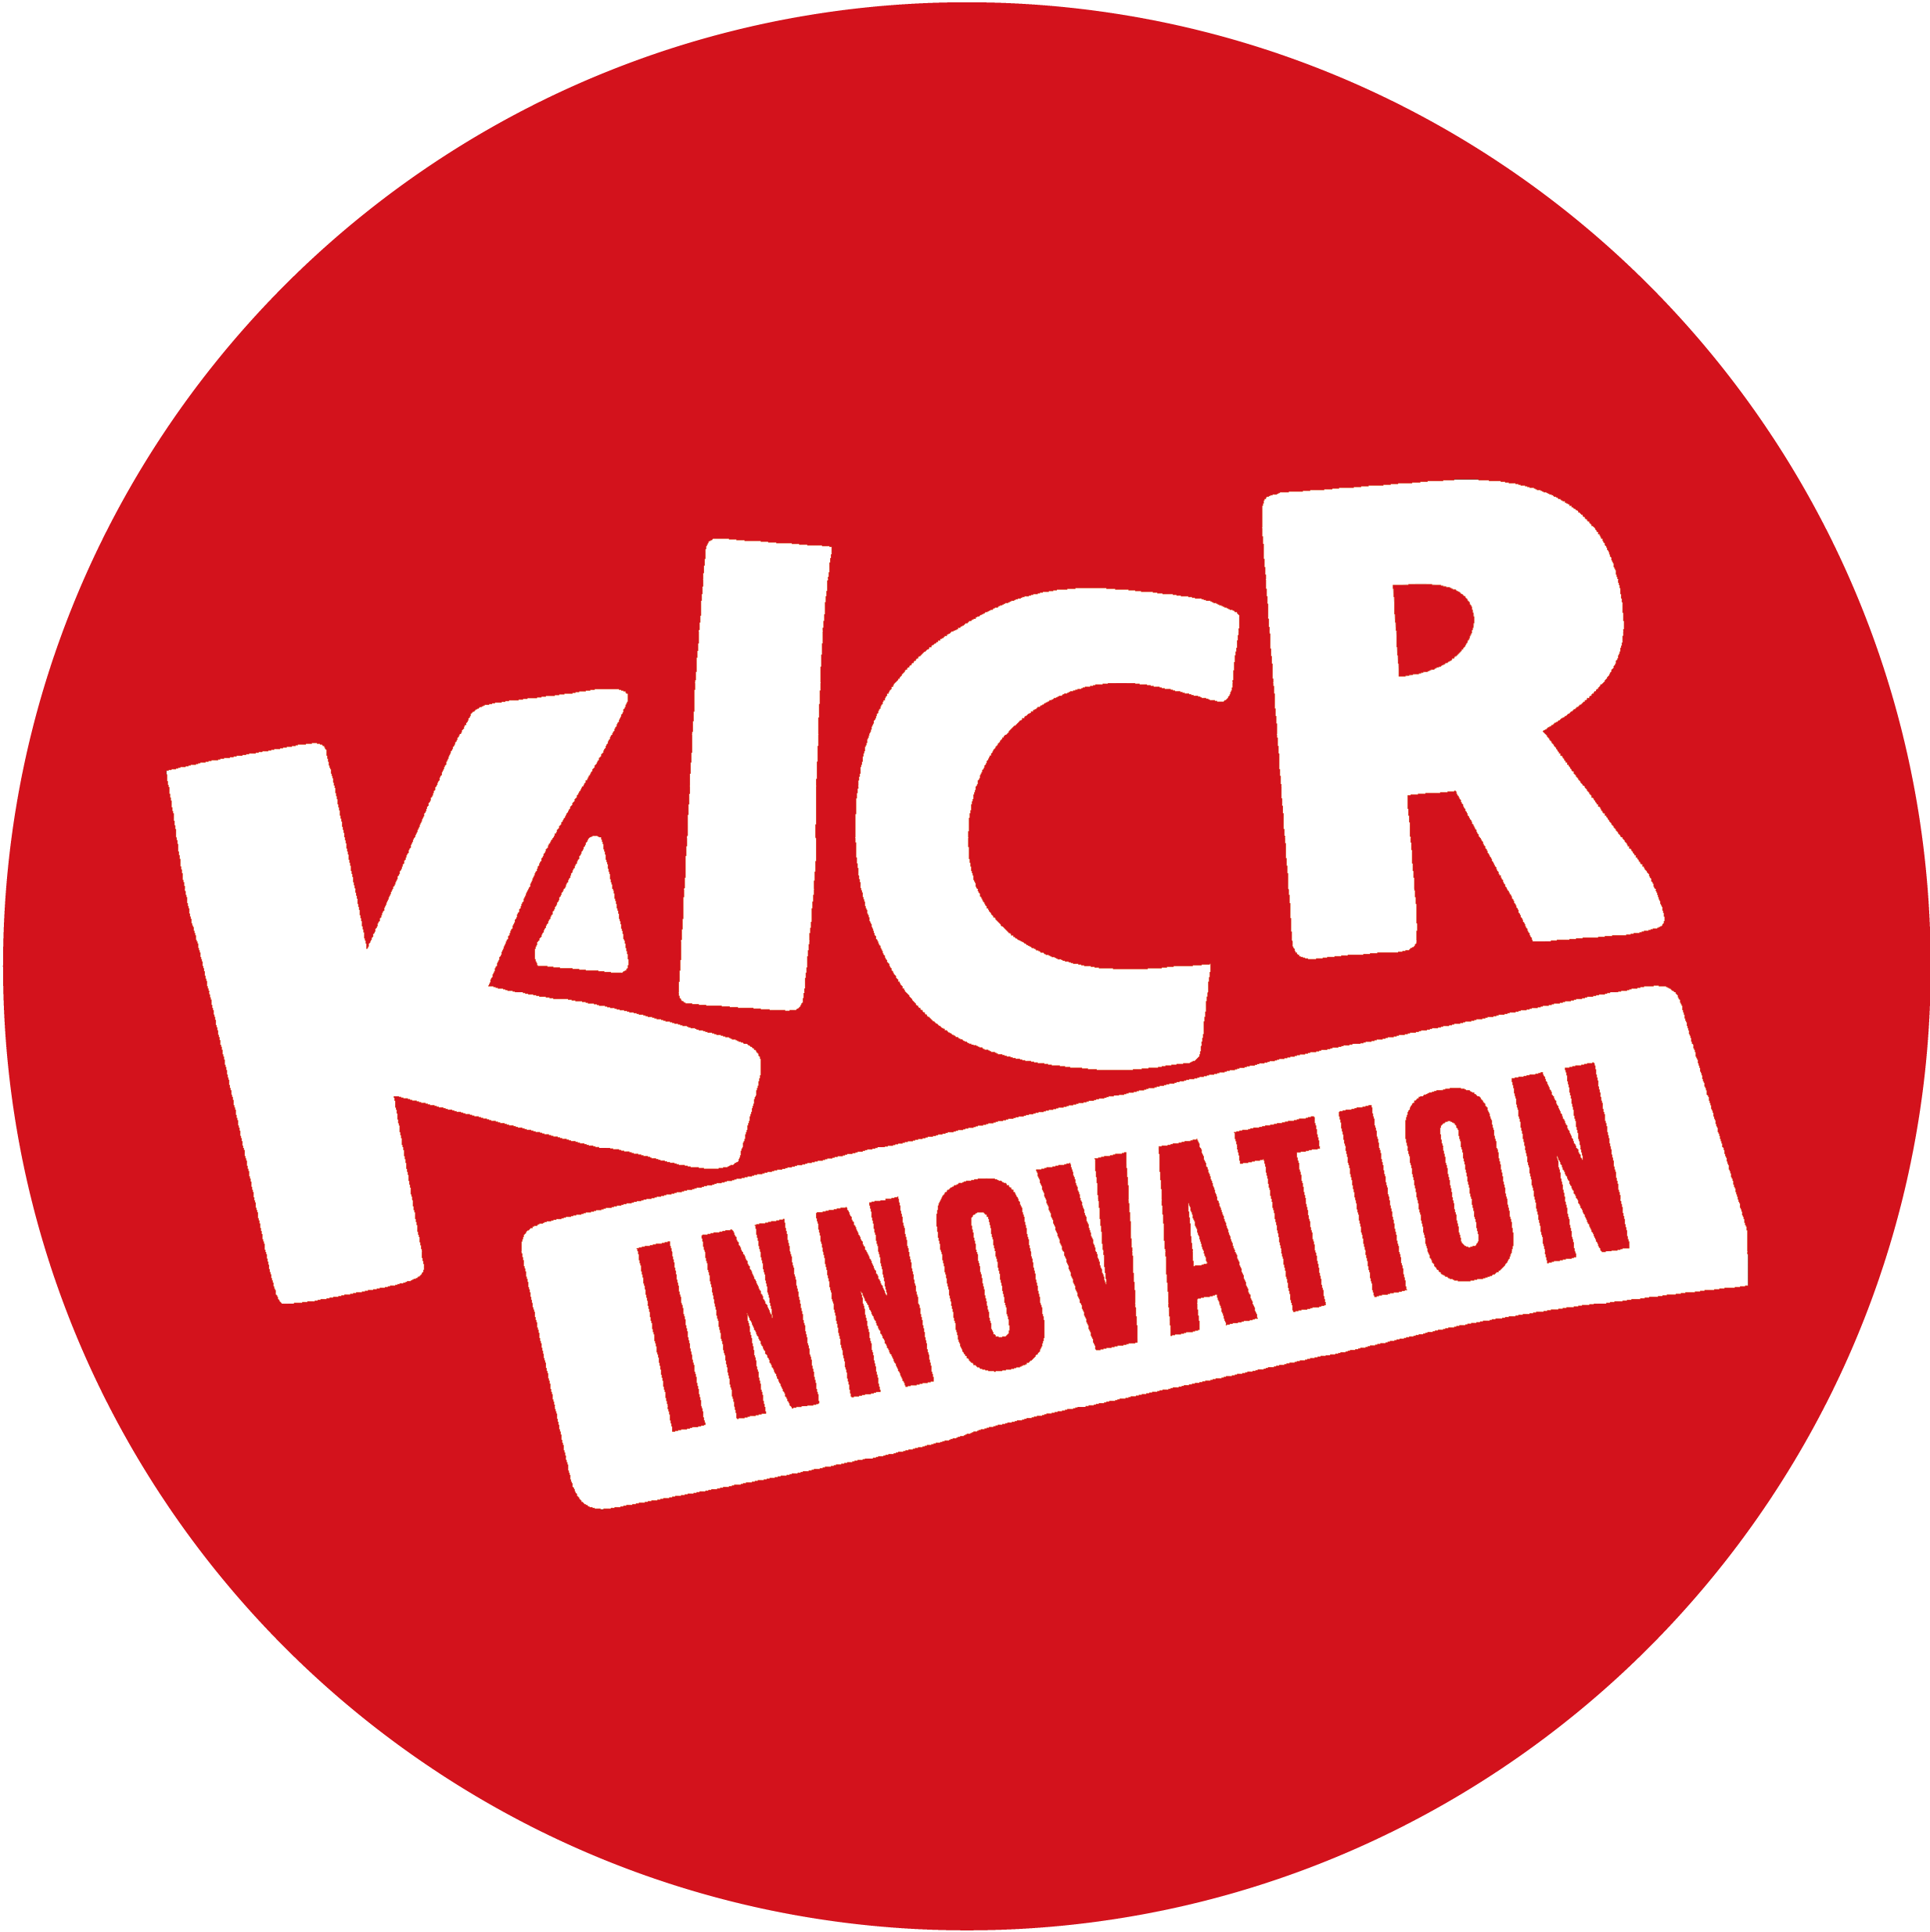 KICR LOGO Final white in red circle 1